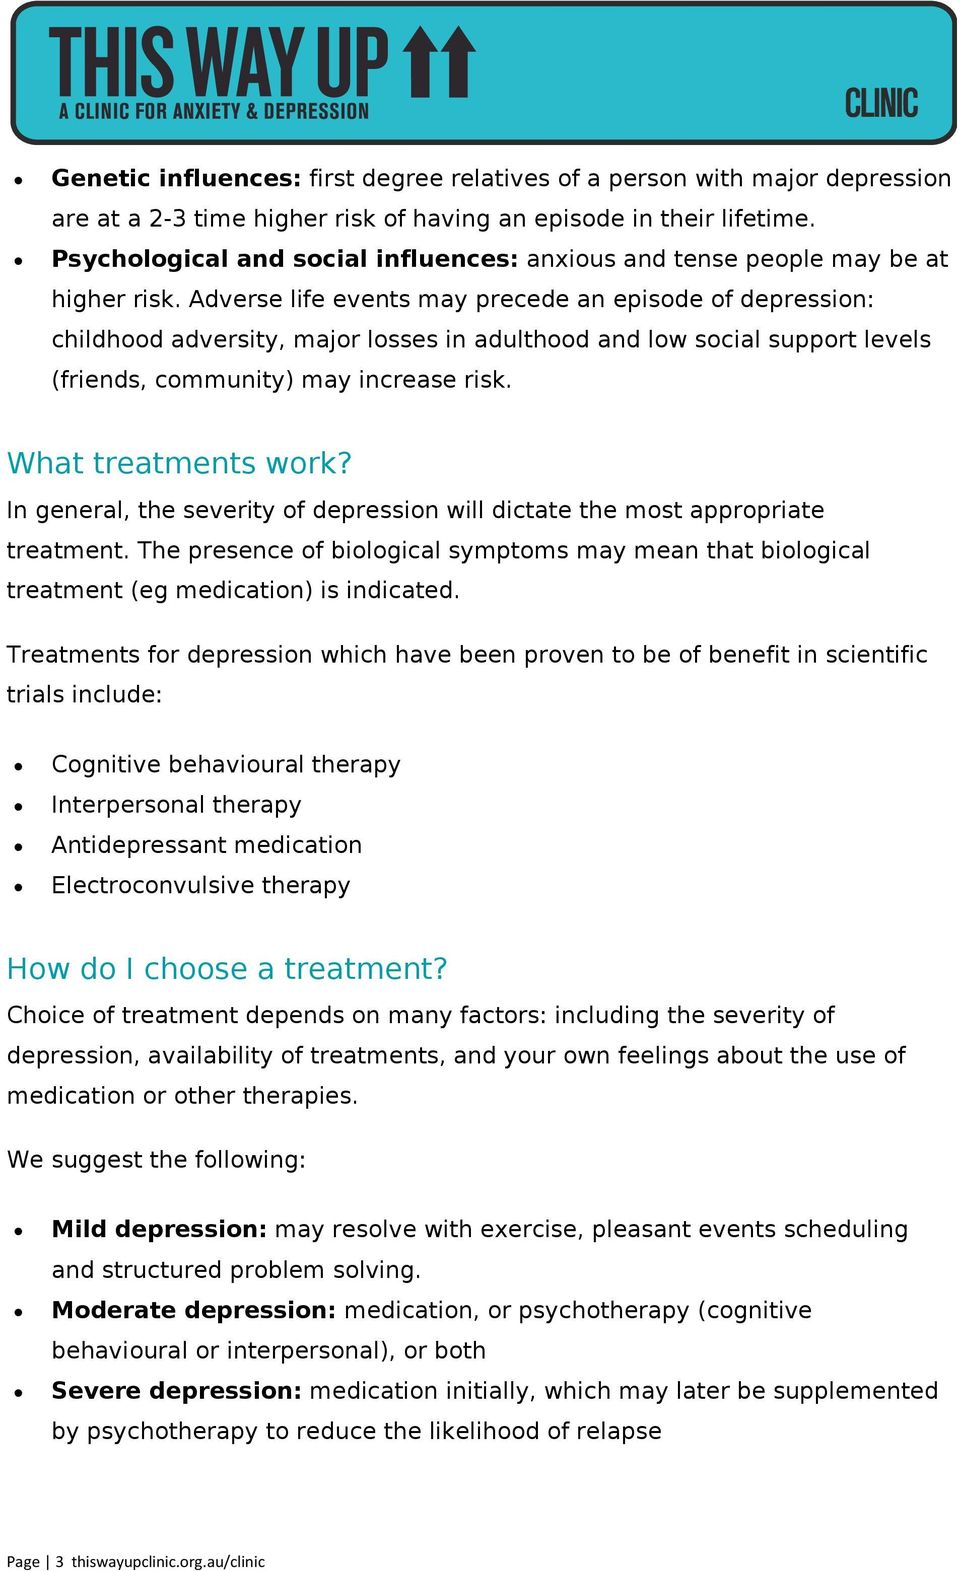 Adverse life events may precede an episode of depression: childhood adversity, major losses in adulthood and low social support levels (friends, community) may increase risk. What treatments work?